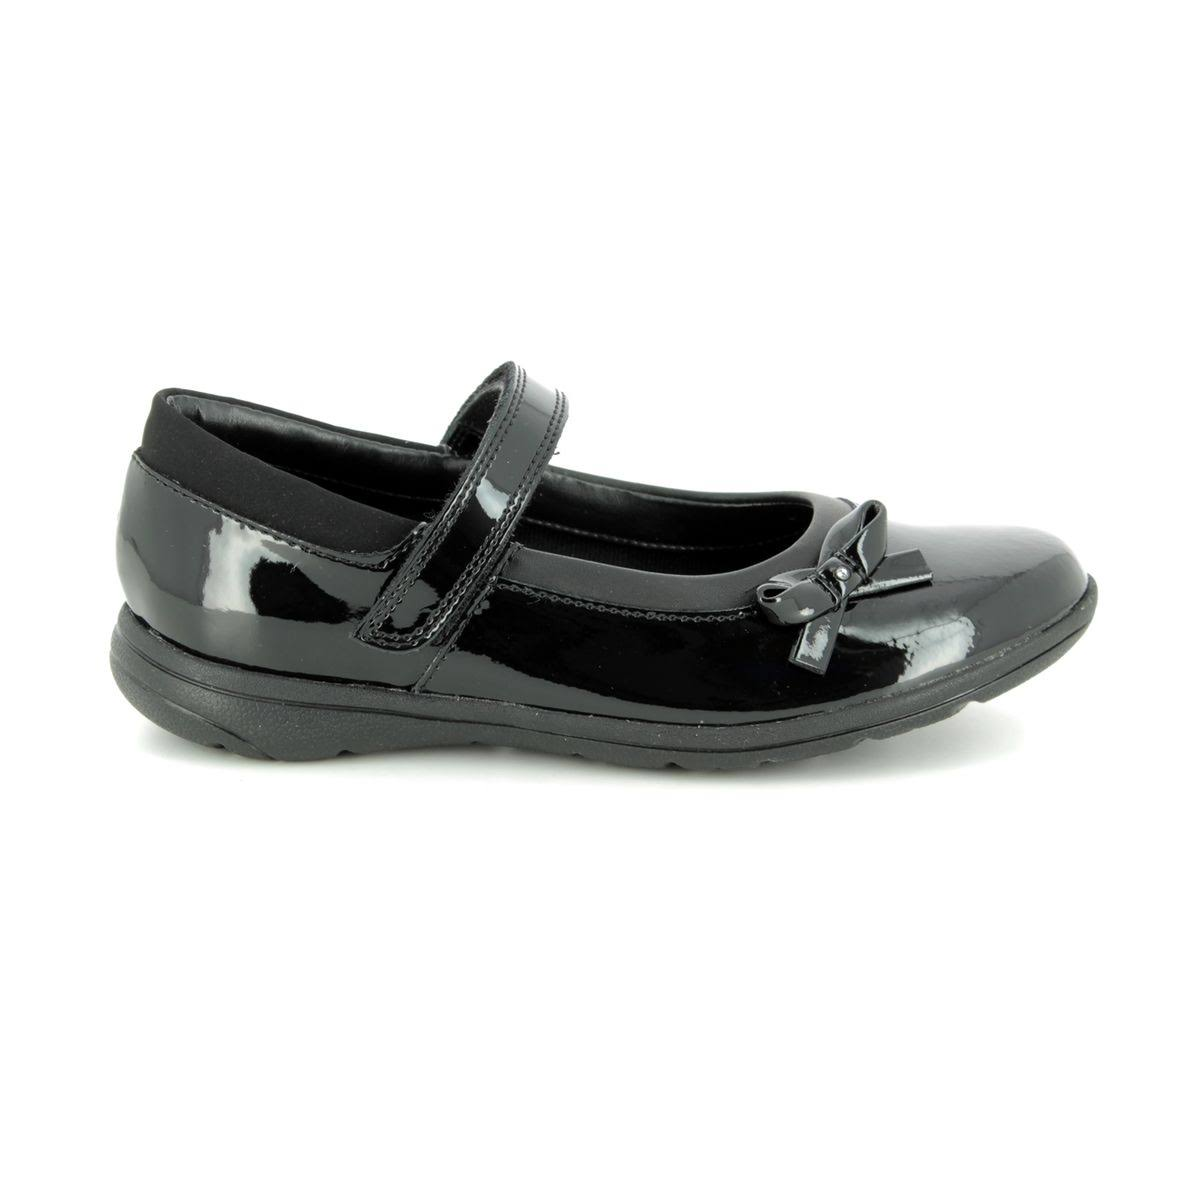 Jn Kids 58h Black Patent School Clarks Venture Star Shoes 3491 5RjLc4Aq3